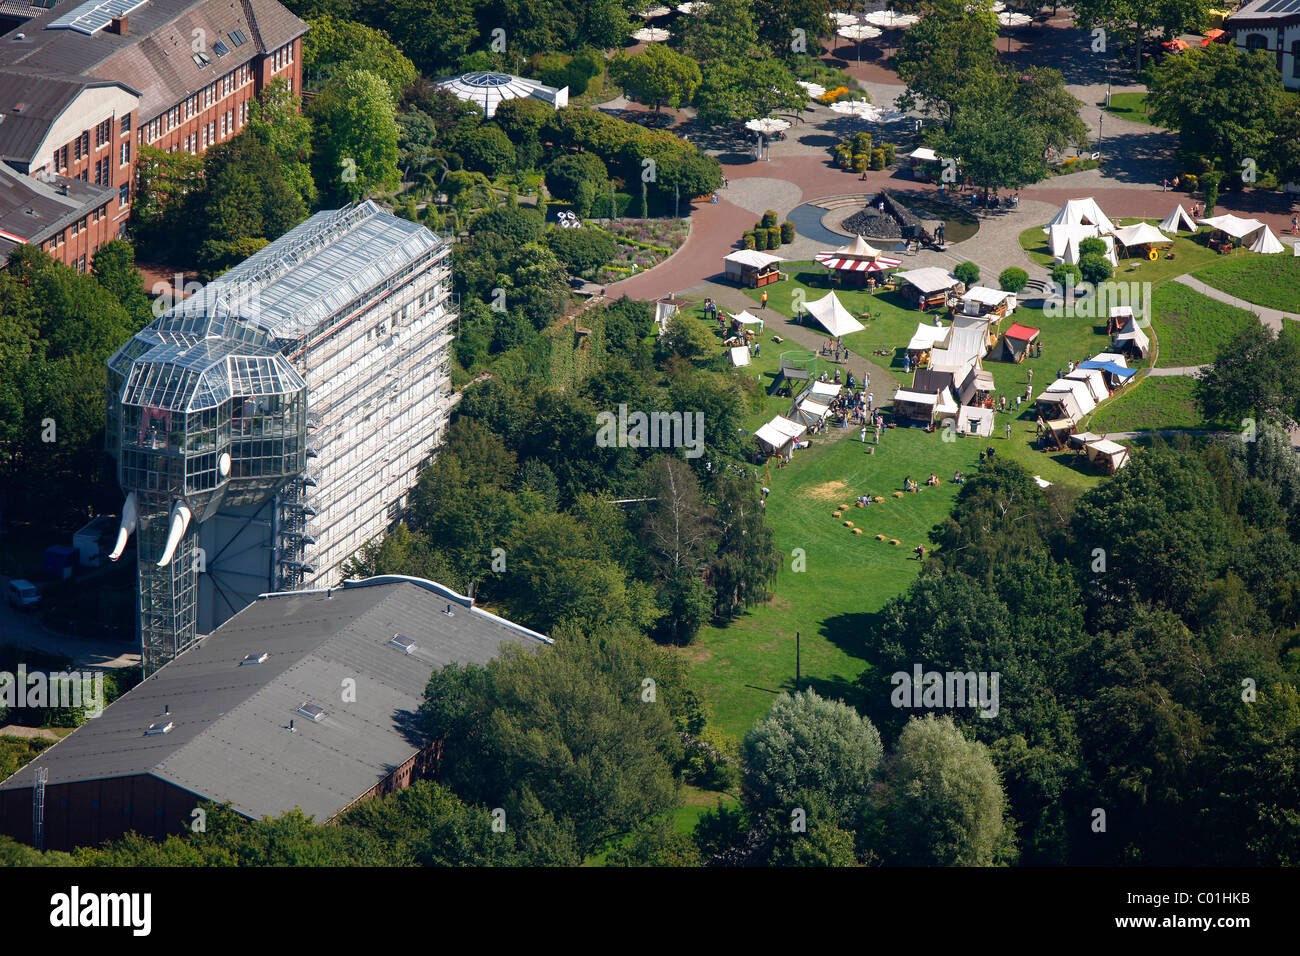 Aerial view, Maxipark, a recreational area, Zechenkaue, former colliery, Hamm, Ruhr area, North Rhine-Westphalia - Stock Image